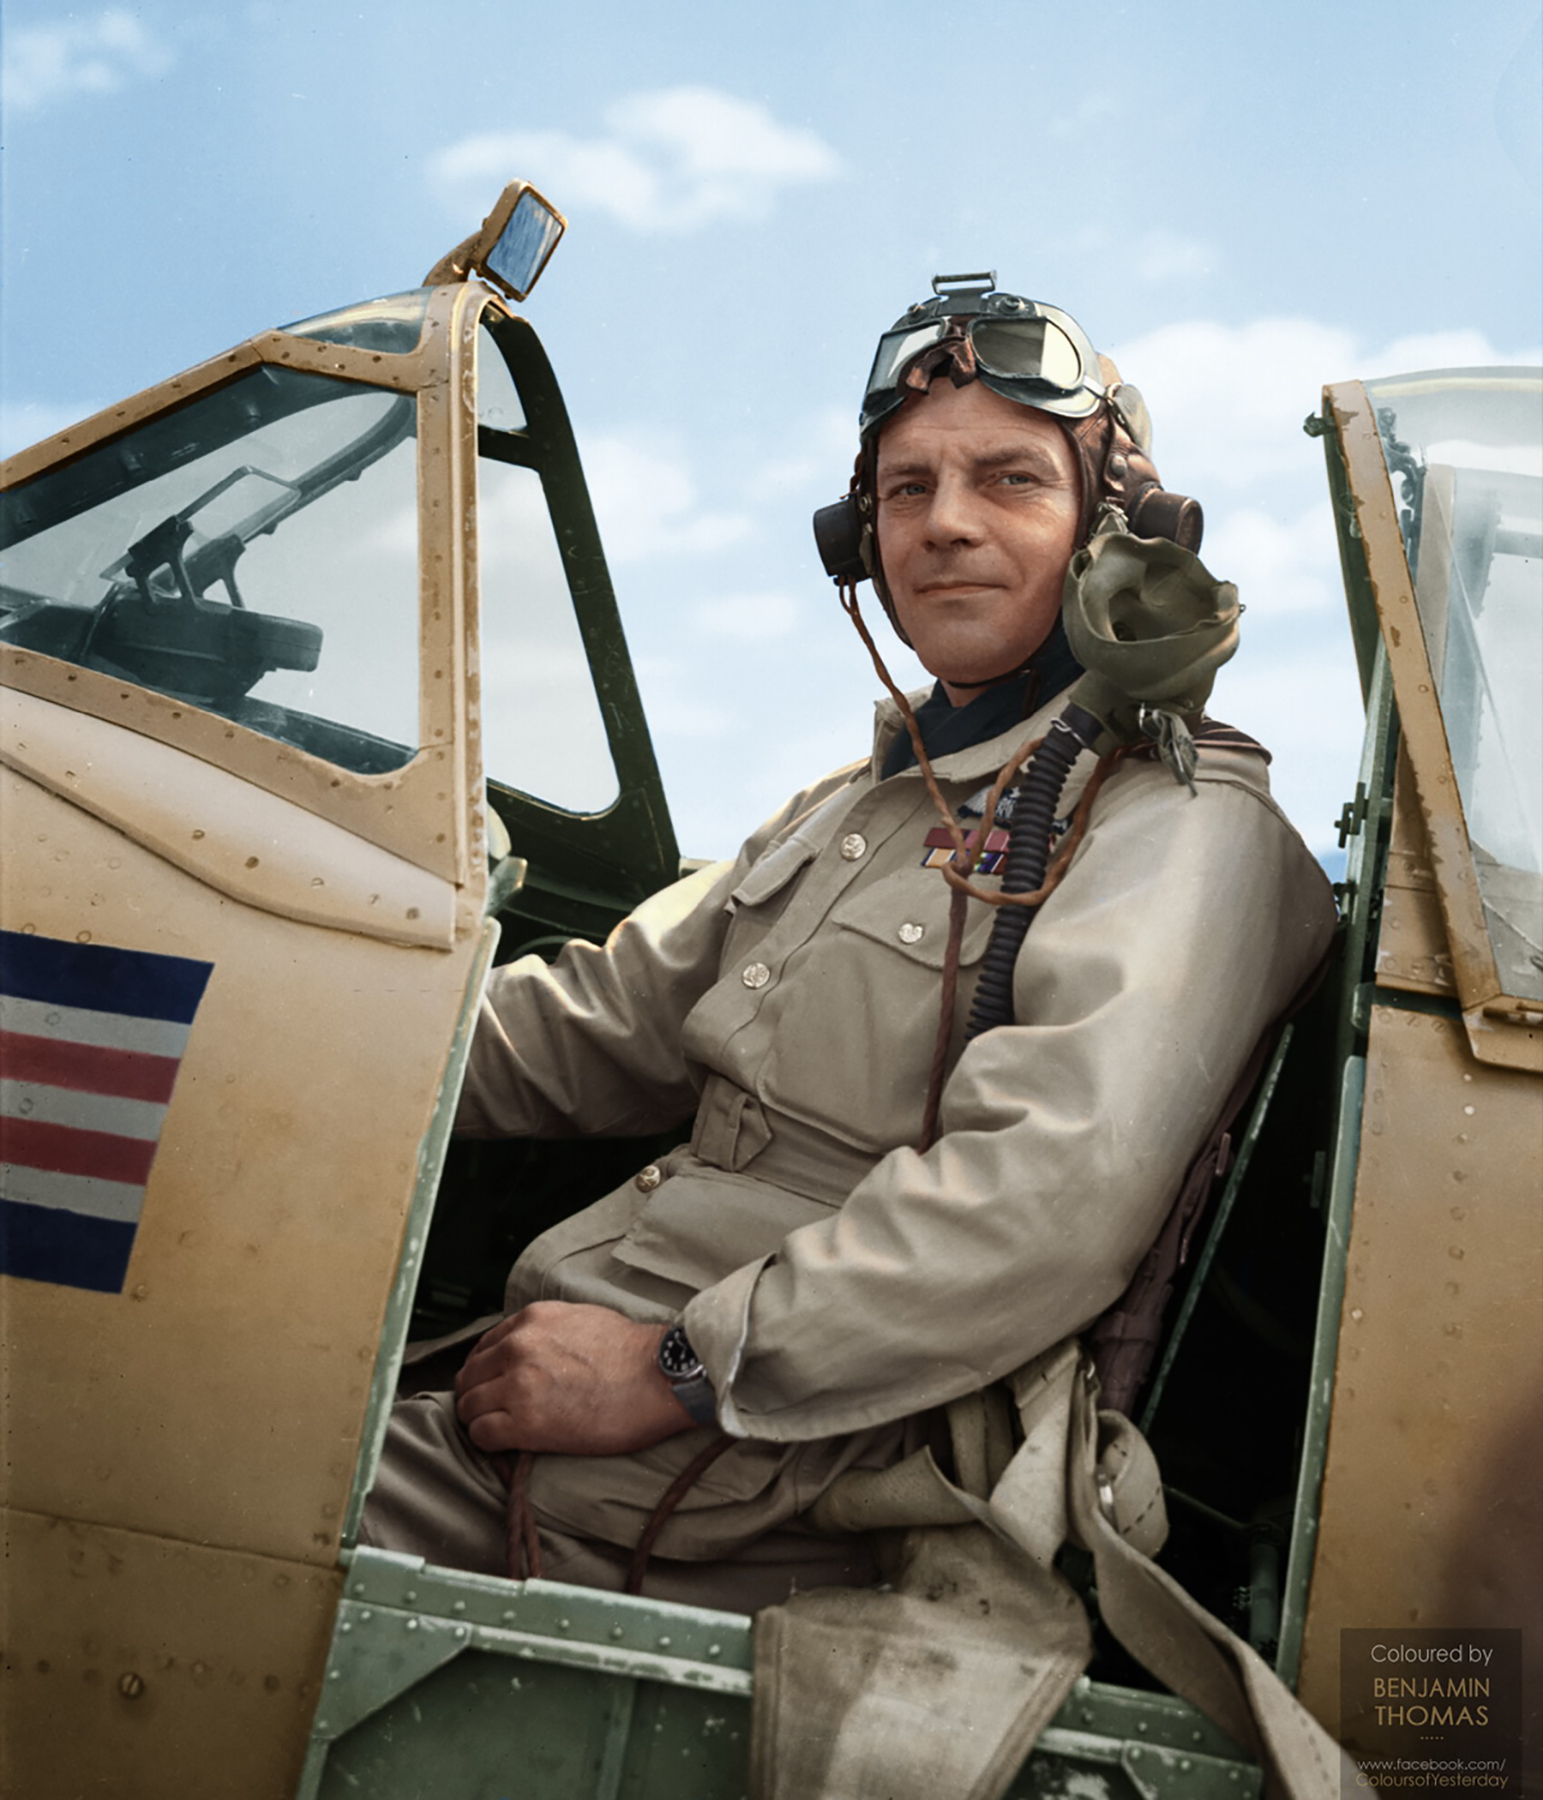 Spitfire LFVIII WFD JF814 Air Vice Marshal William Forster Dickson personal ac Italy 1943 02